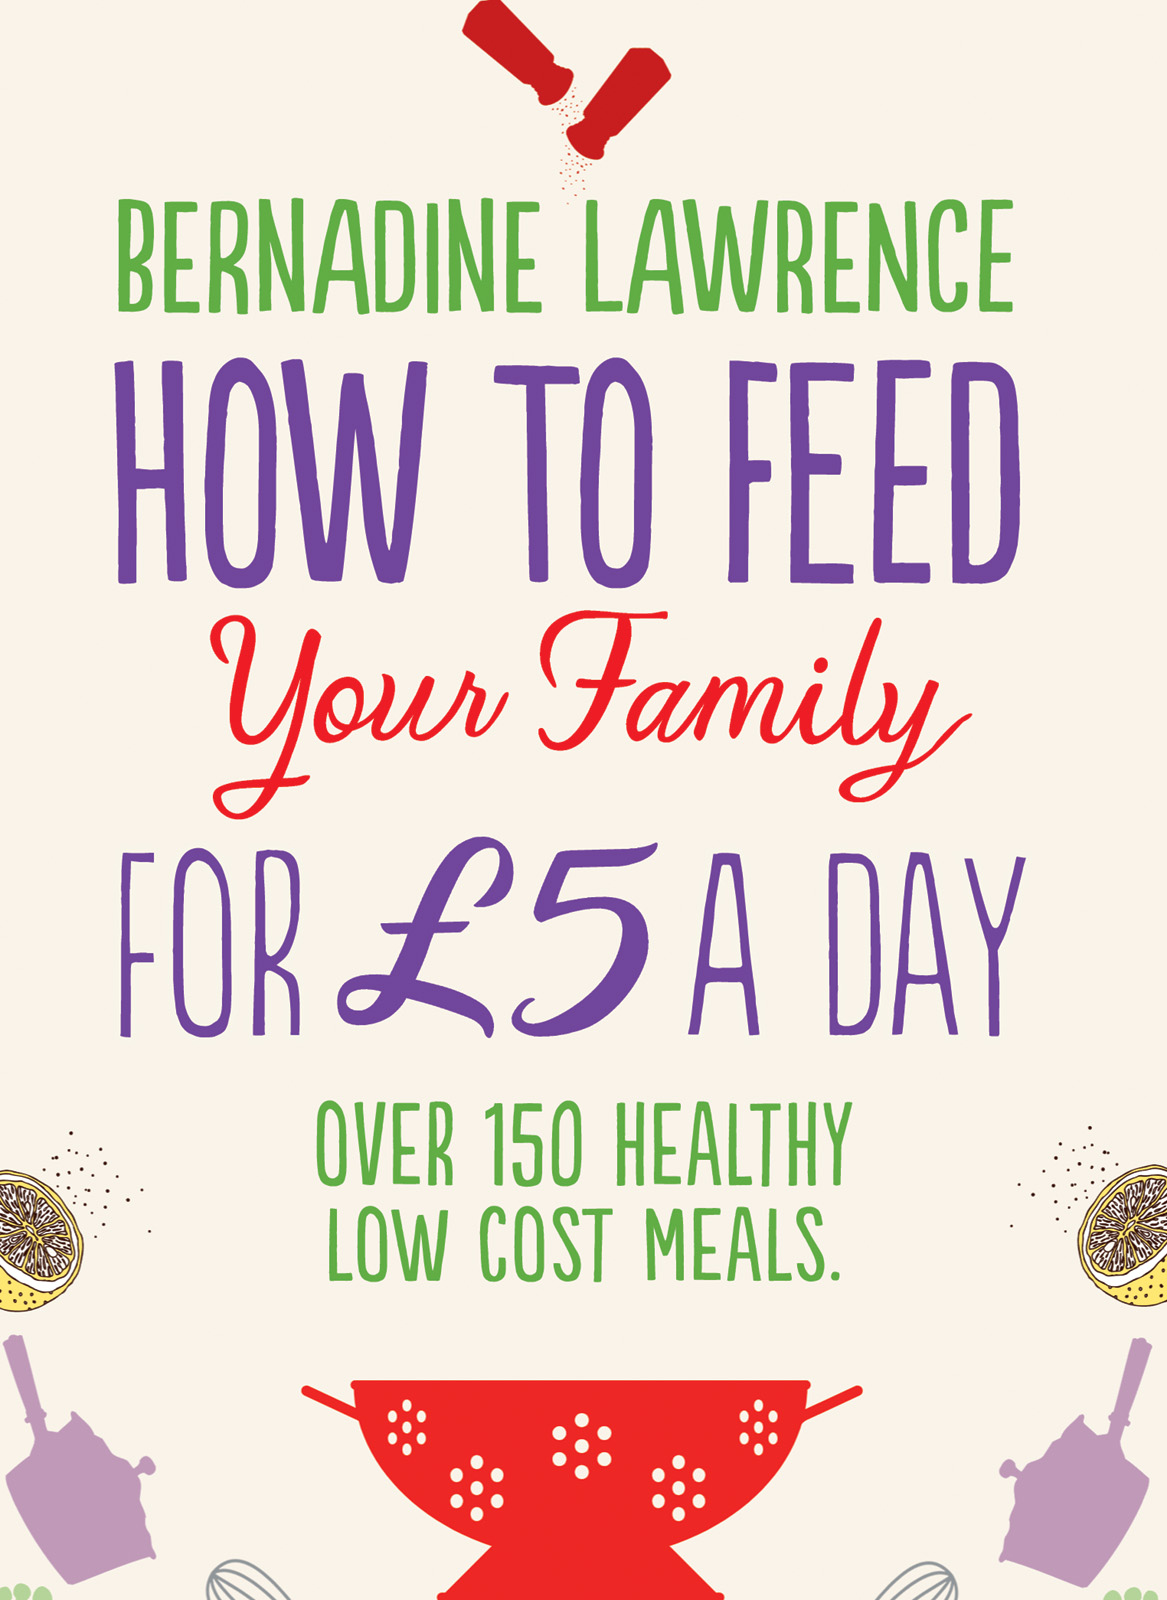 Bernadine Lawrence - How to Feed Your Family for £5 a Day